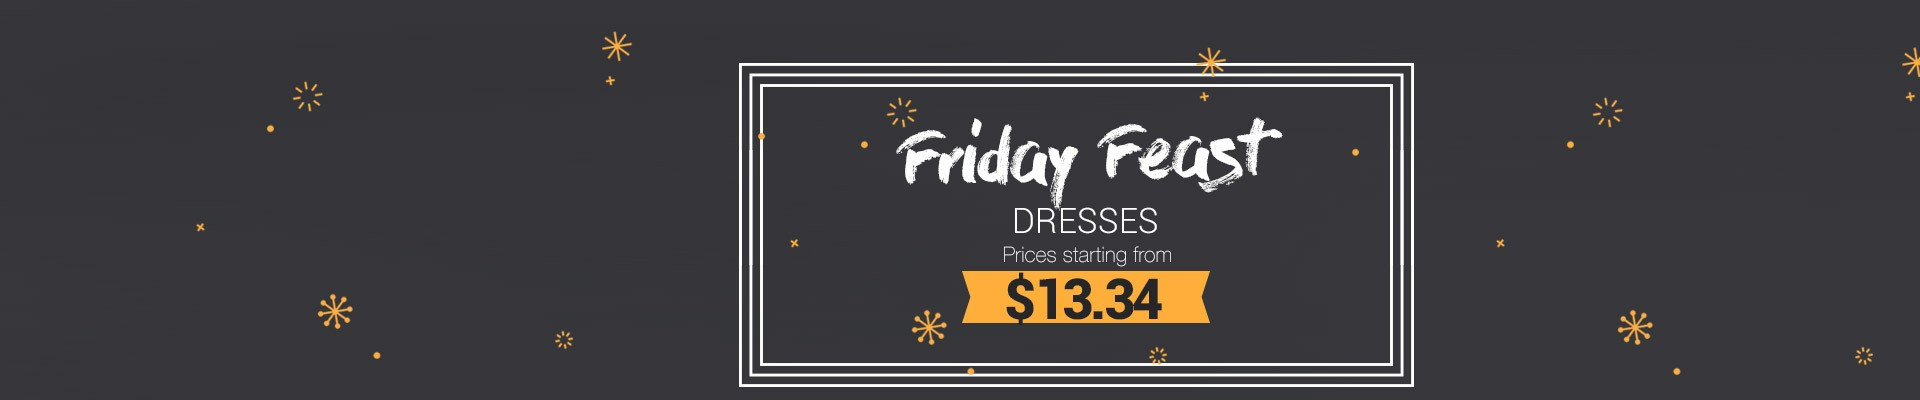 Discounted Dresses from Friday to Friday